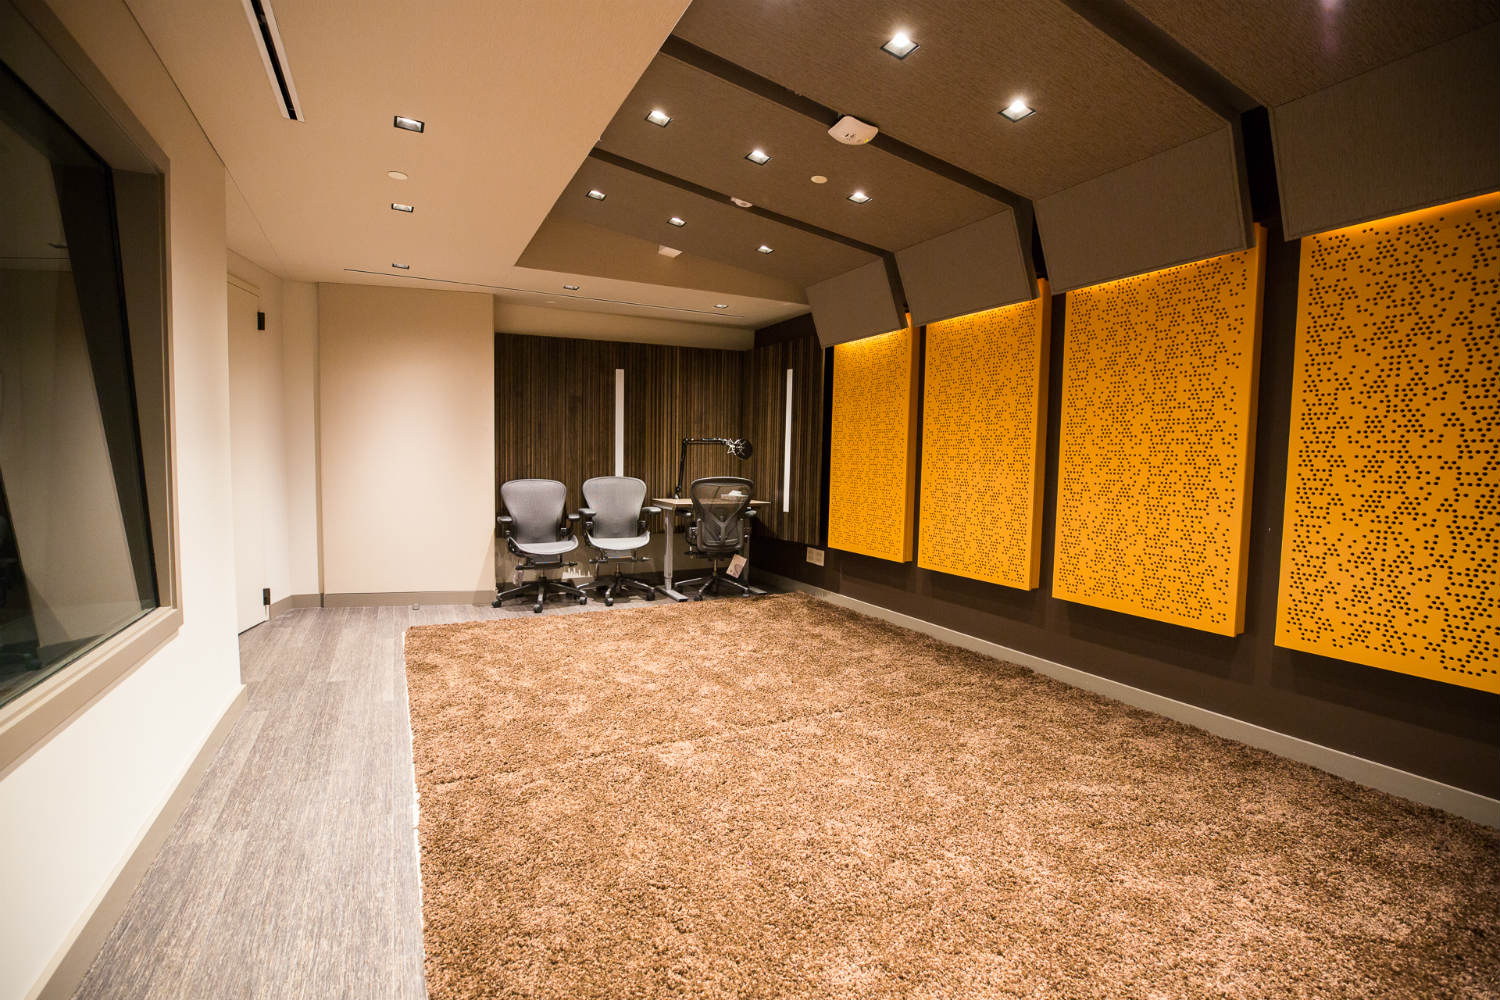 Audible is the world's largest producer/distributor of downloadable audiobooks and other spoken-word entertainment. WSDG was commissioned to design their new state-of-the-art recording studio complex. Live Room A Side